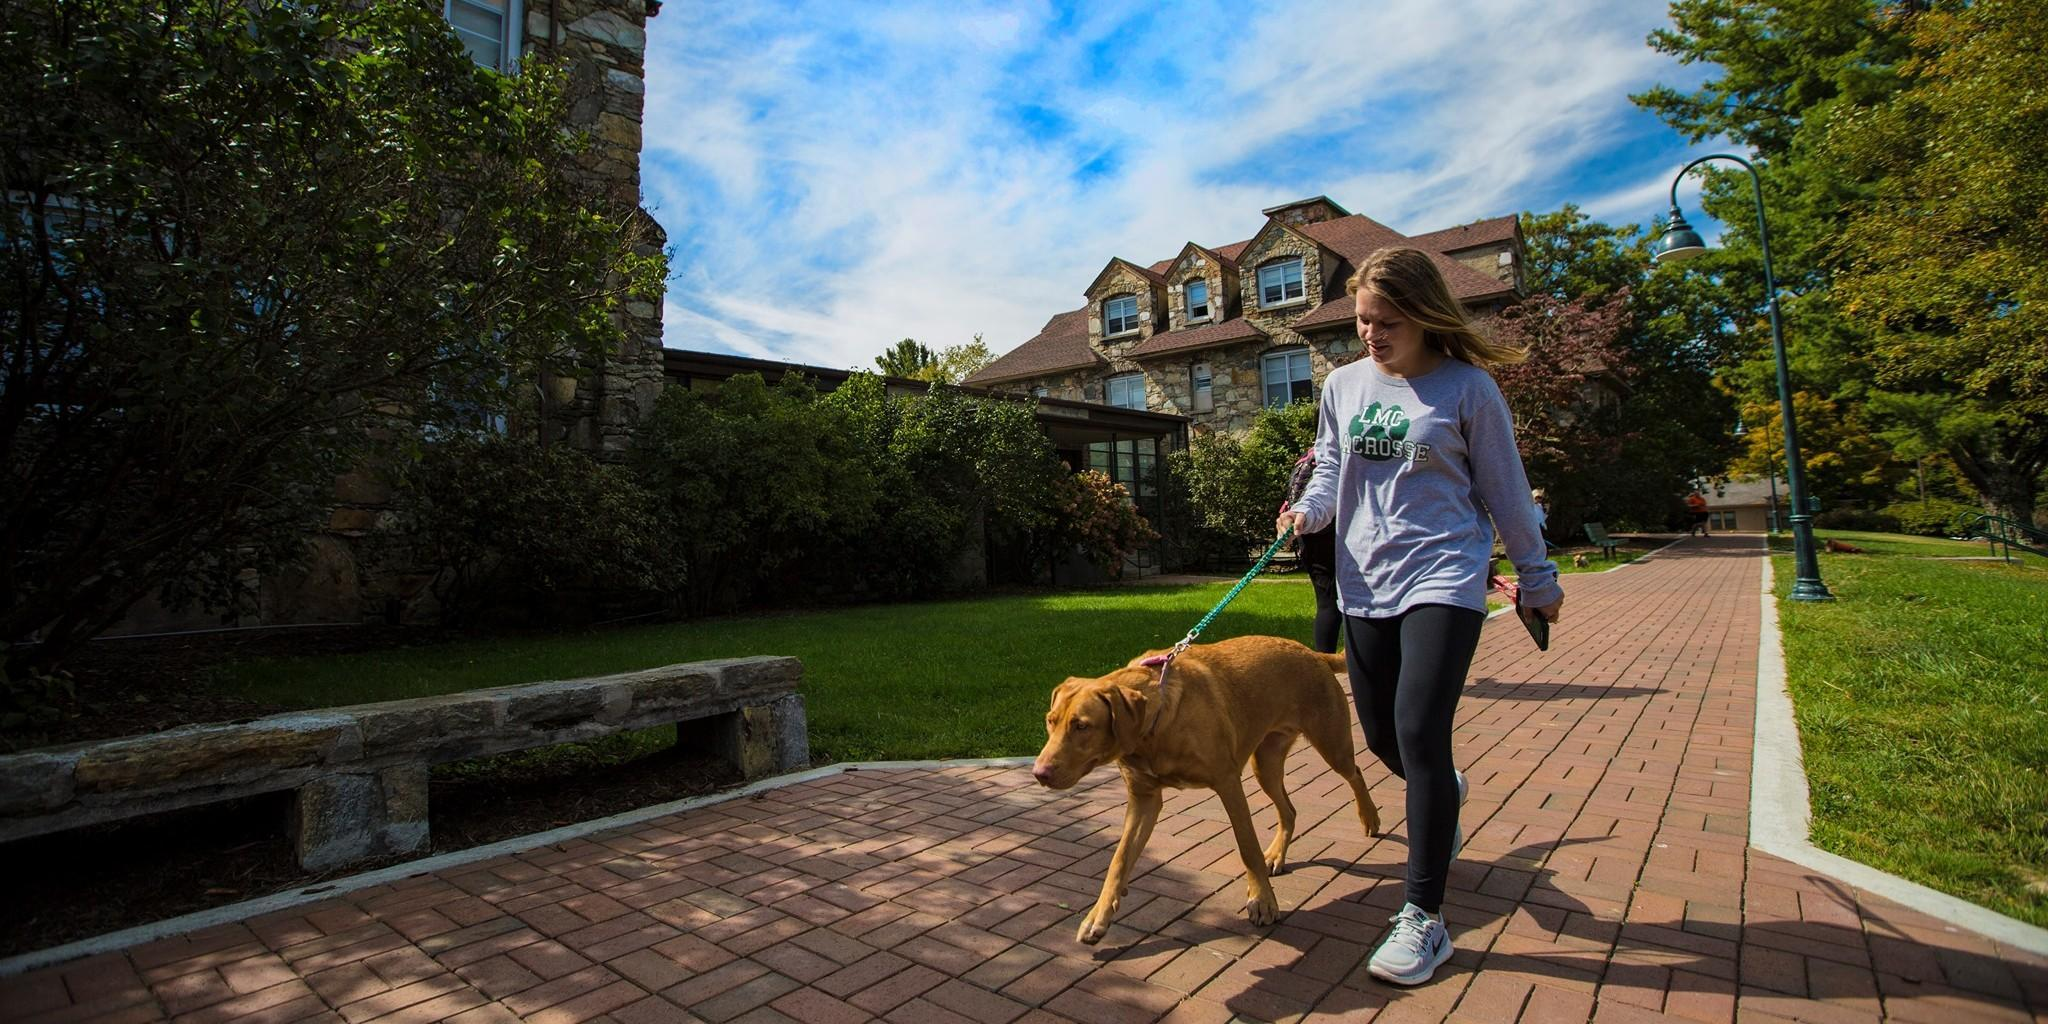 7 Pet-Friendly Colleges that Welcome Dogs in Dorms